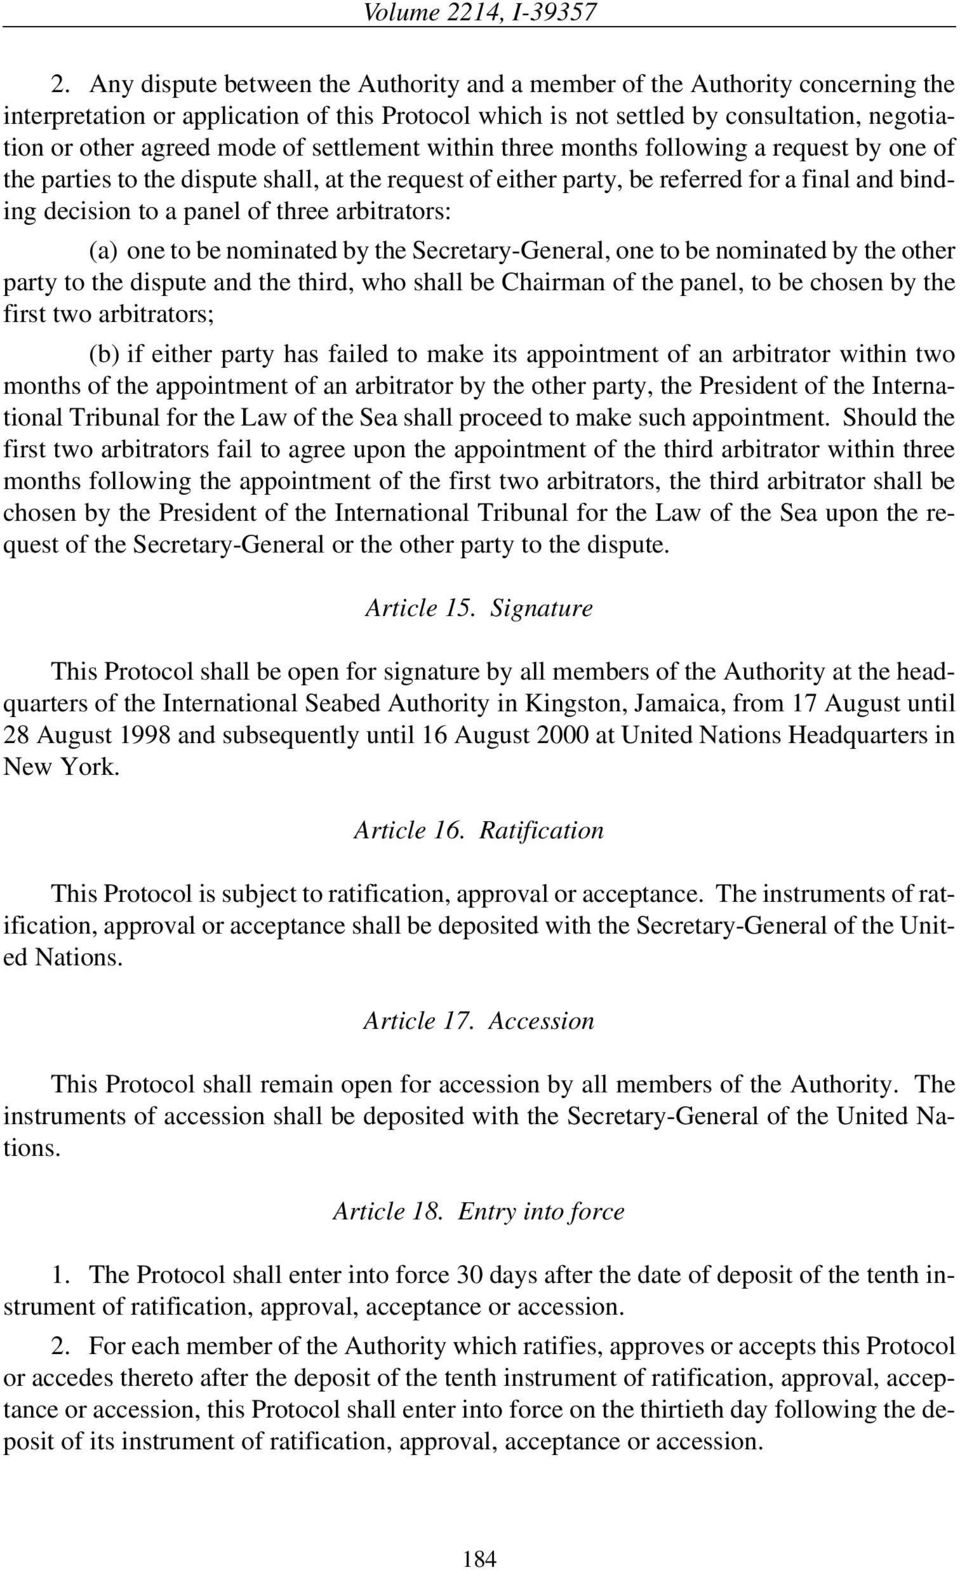 arbitrators: (a) one to be nominated by the Secretary-General, one to be nominated by the other party to the dispute and the third, who shall be Chairman of the panel, to be chosen by the first two